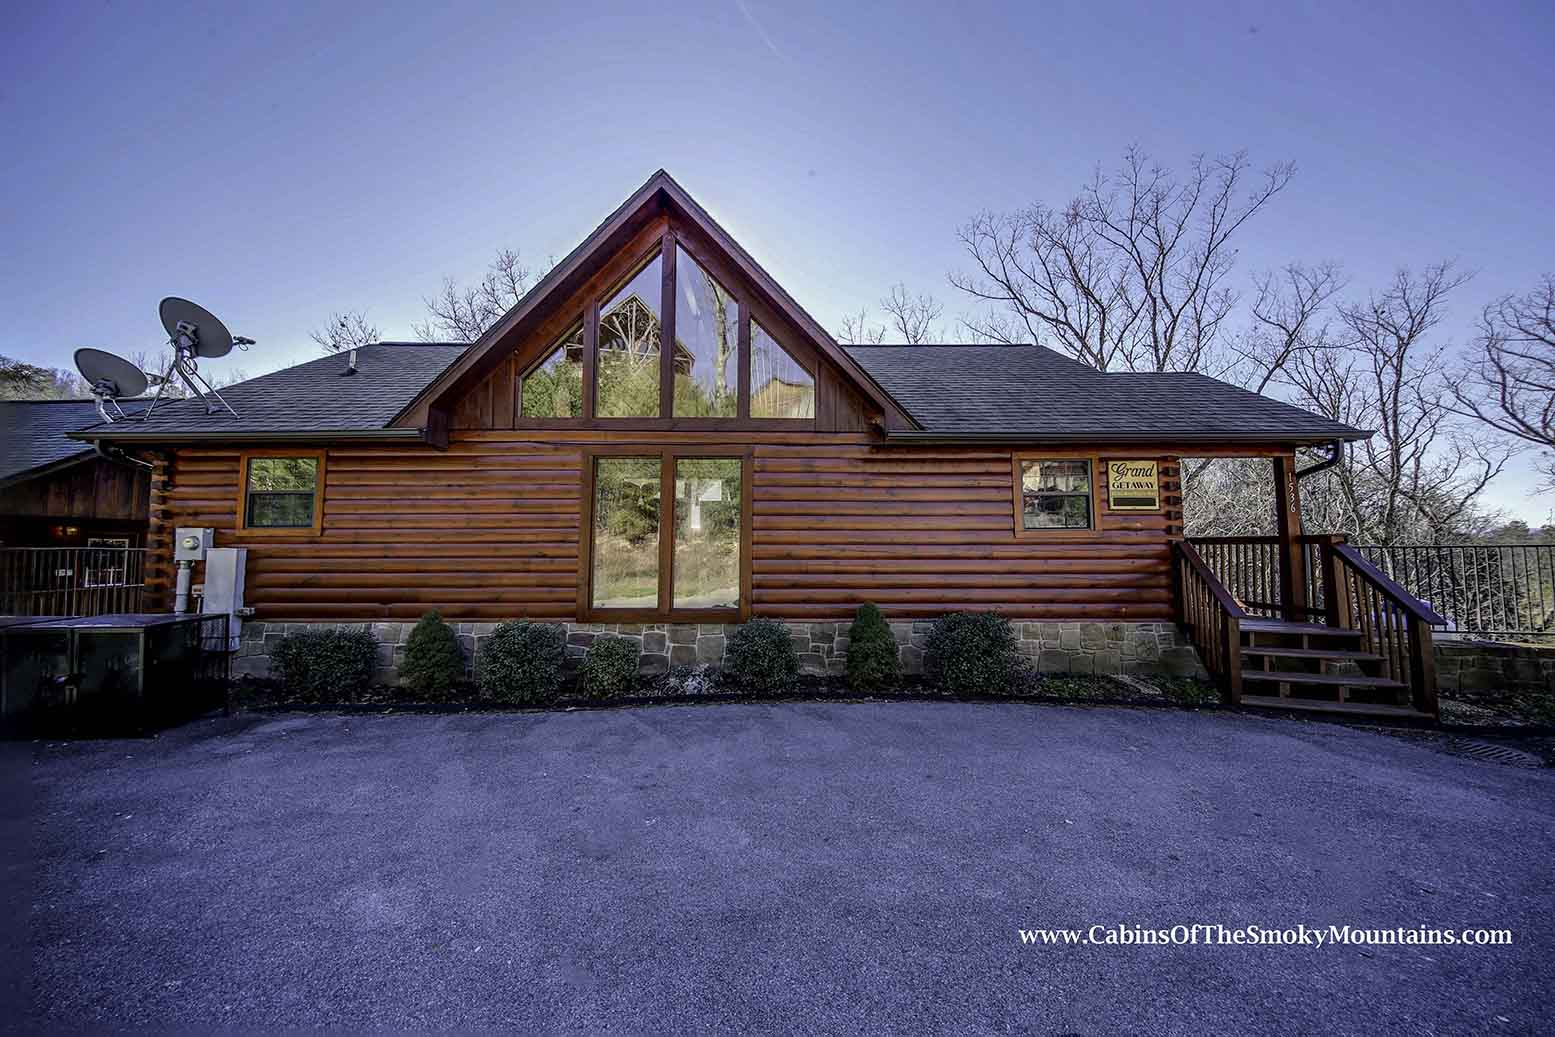 Pigeon Forge Cabin Grand Getaway 4 Bedroom Sleeps 10 Jacuzzi Home Theater Swimming